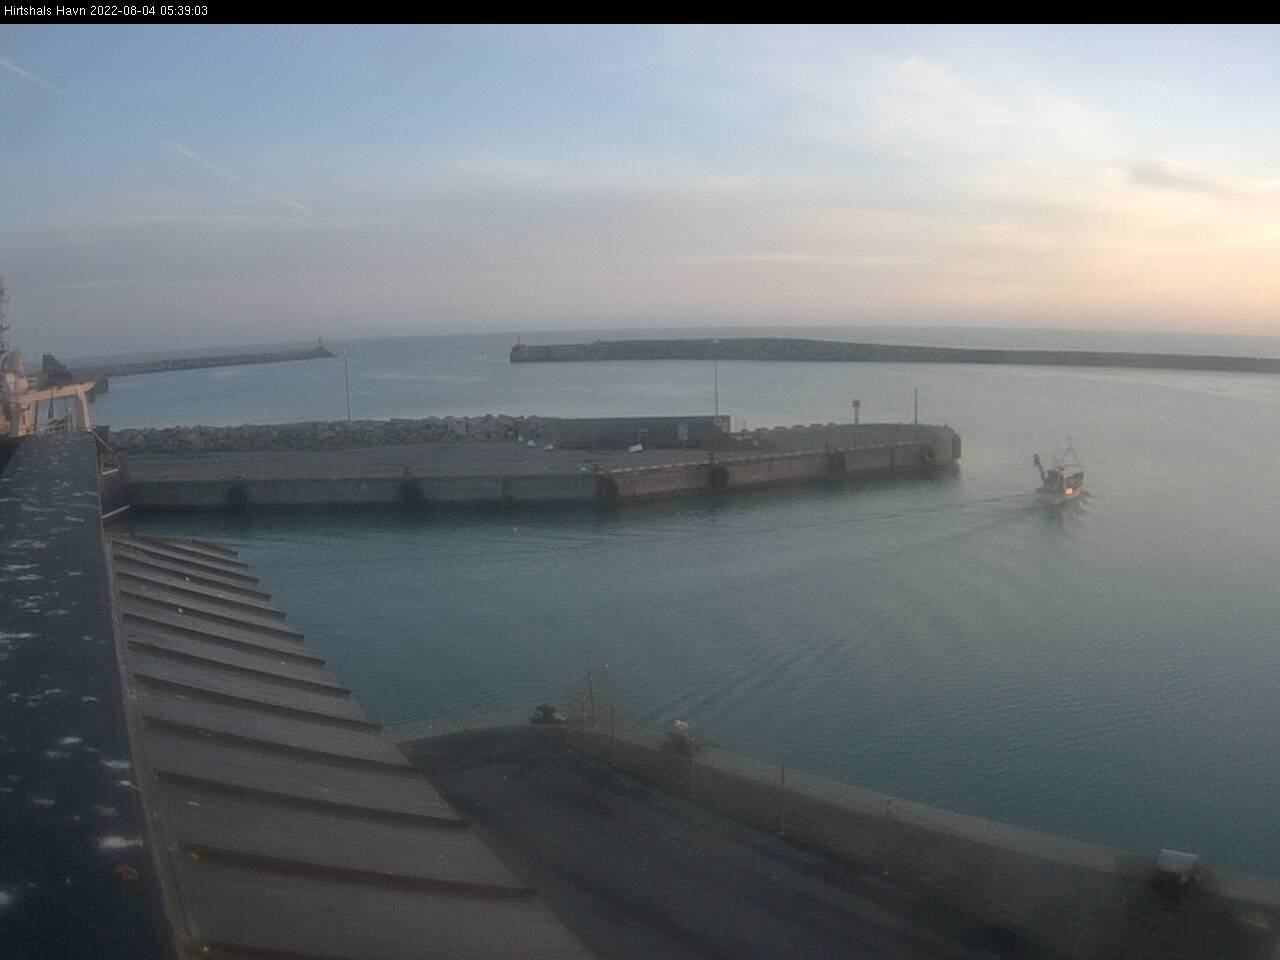 Webcam Hirtshals Havn